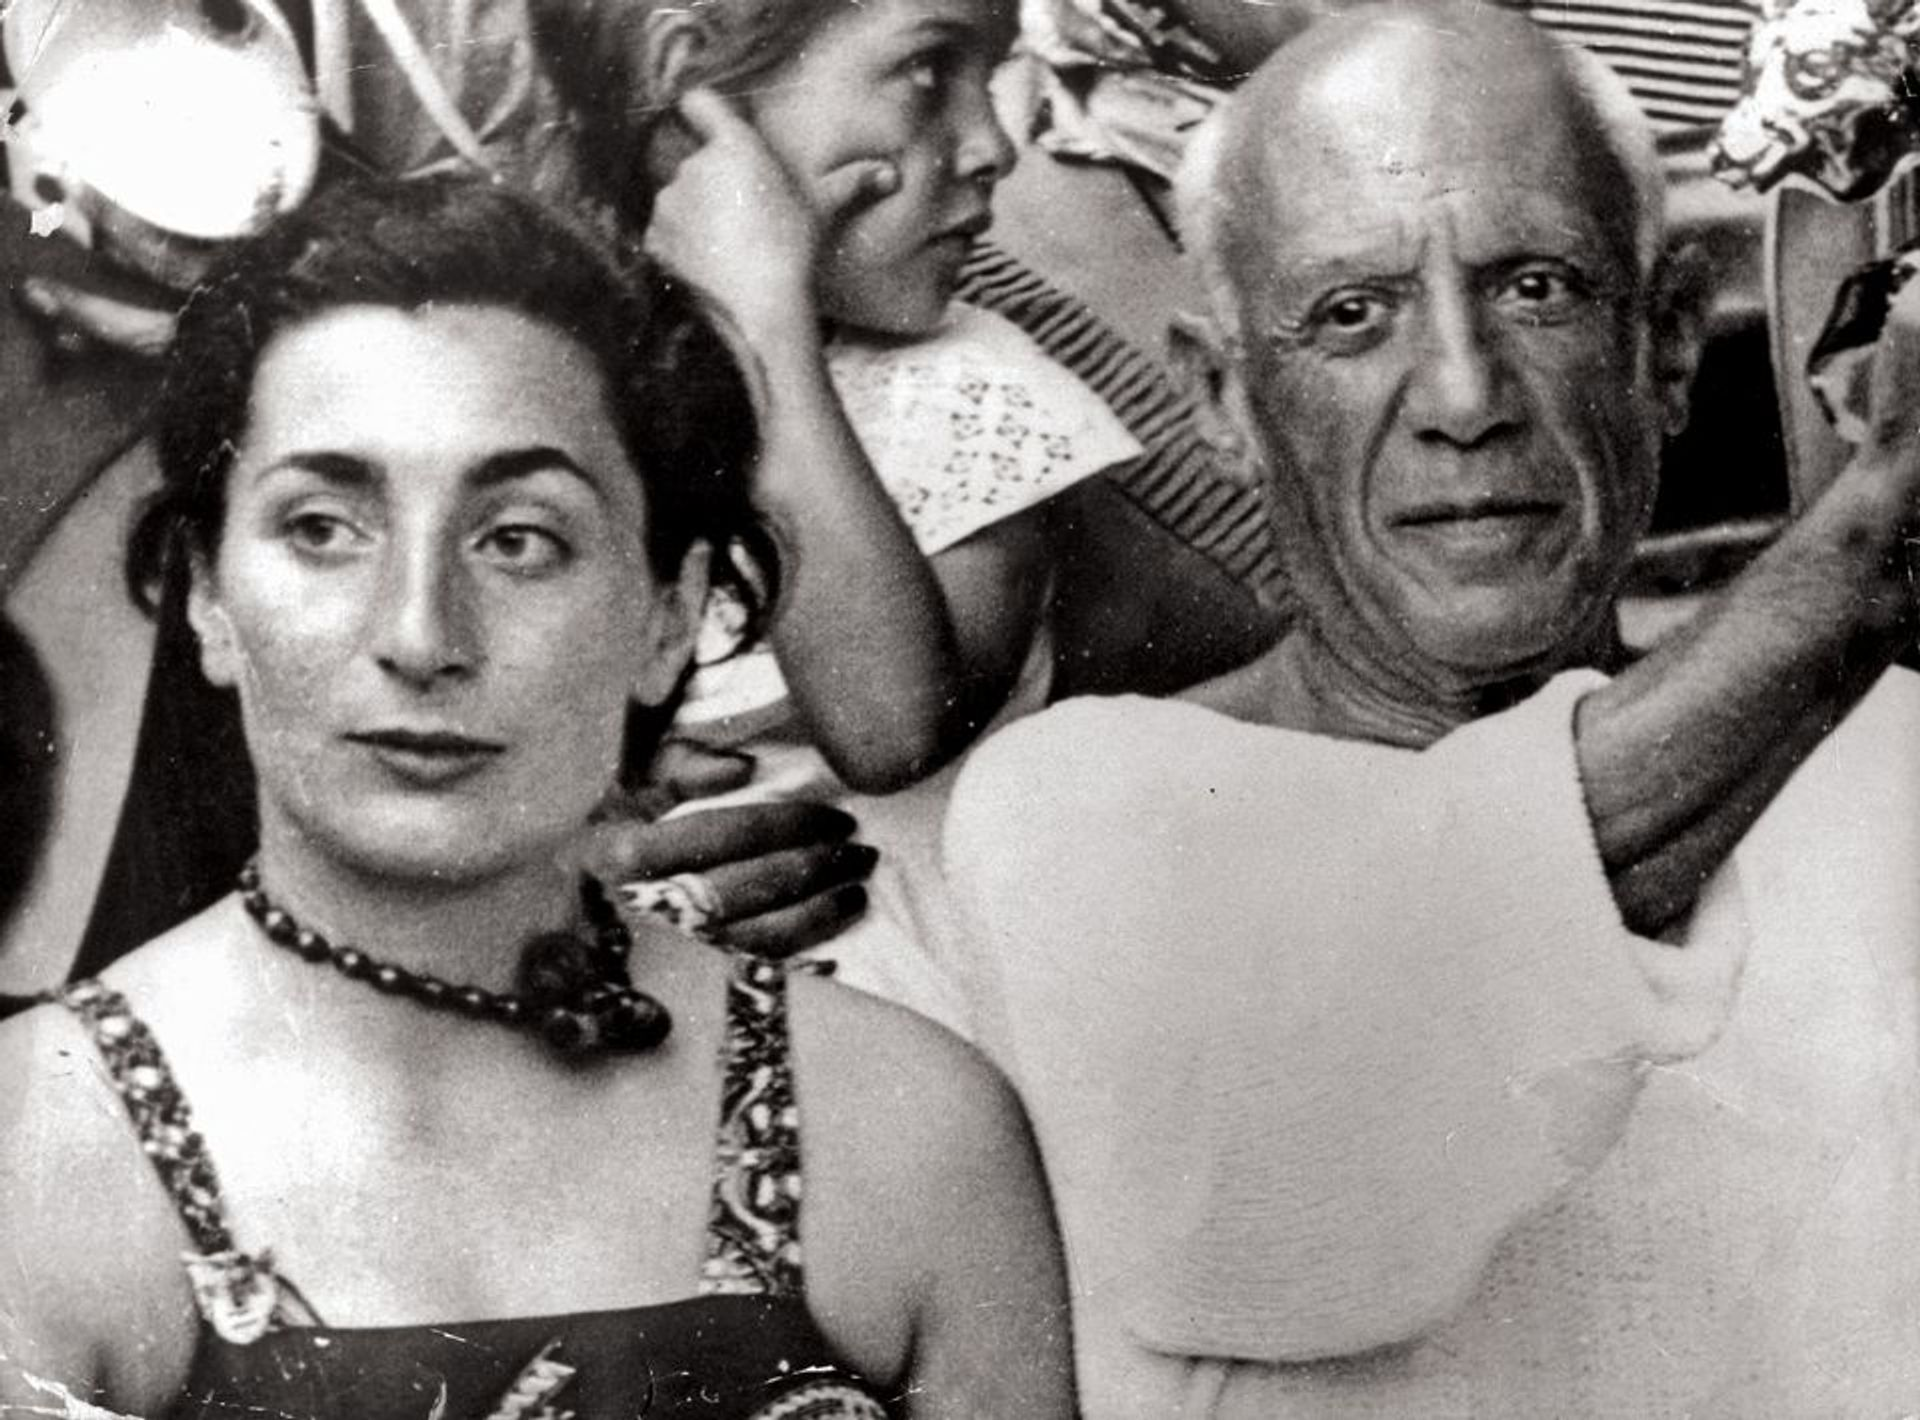 Pablo Picasso with Jacqueline, his wife and muse, in 1955 © Keystone Pictures/Alamy